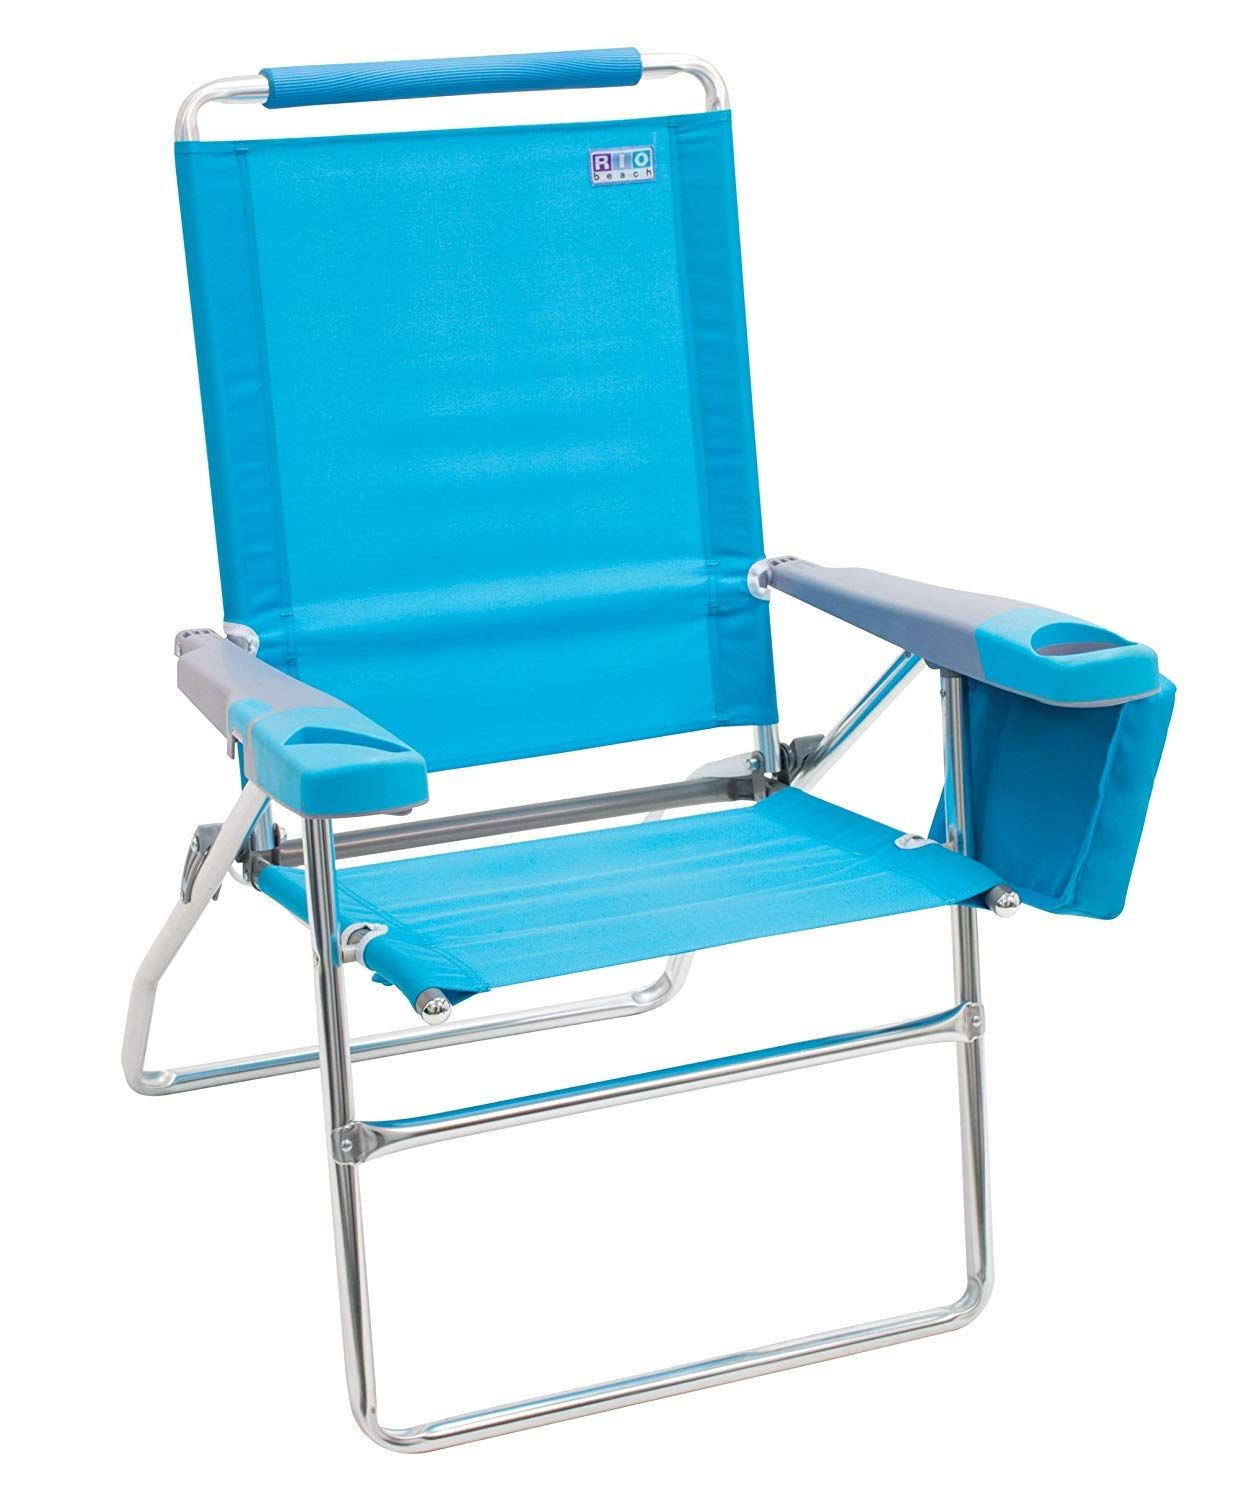 Folding Beach Chairs For Sale Beachfront Decor in 2020